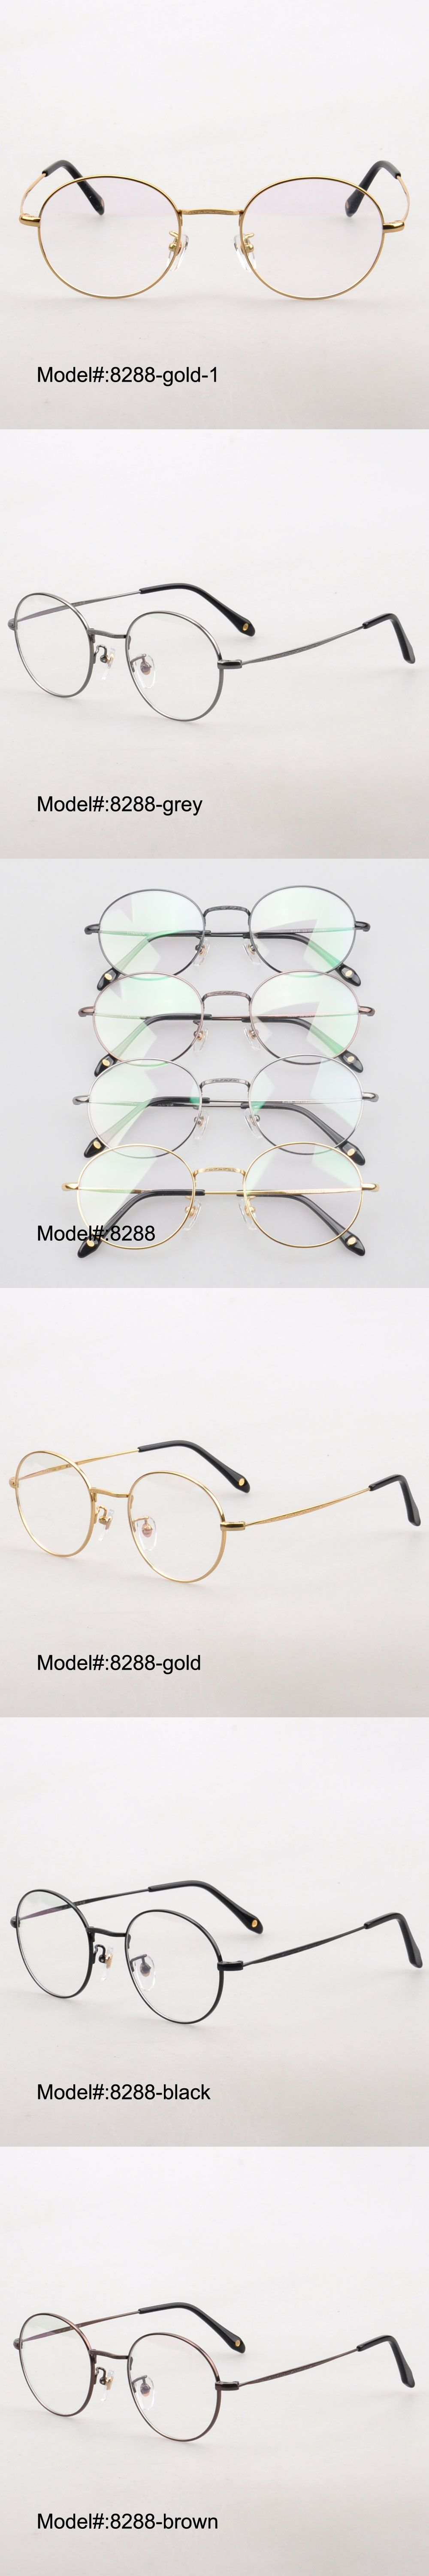 Apparel Accessories Men's Glasses Unisex Retro Fashion Full Rim Round Frame Pure Titanium Clear Lens Myopia Eyewear Brand Gold Silver Optical Goggle Eyeglasses